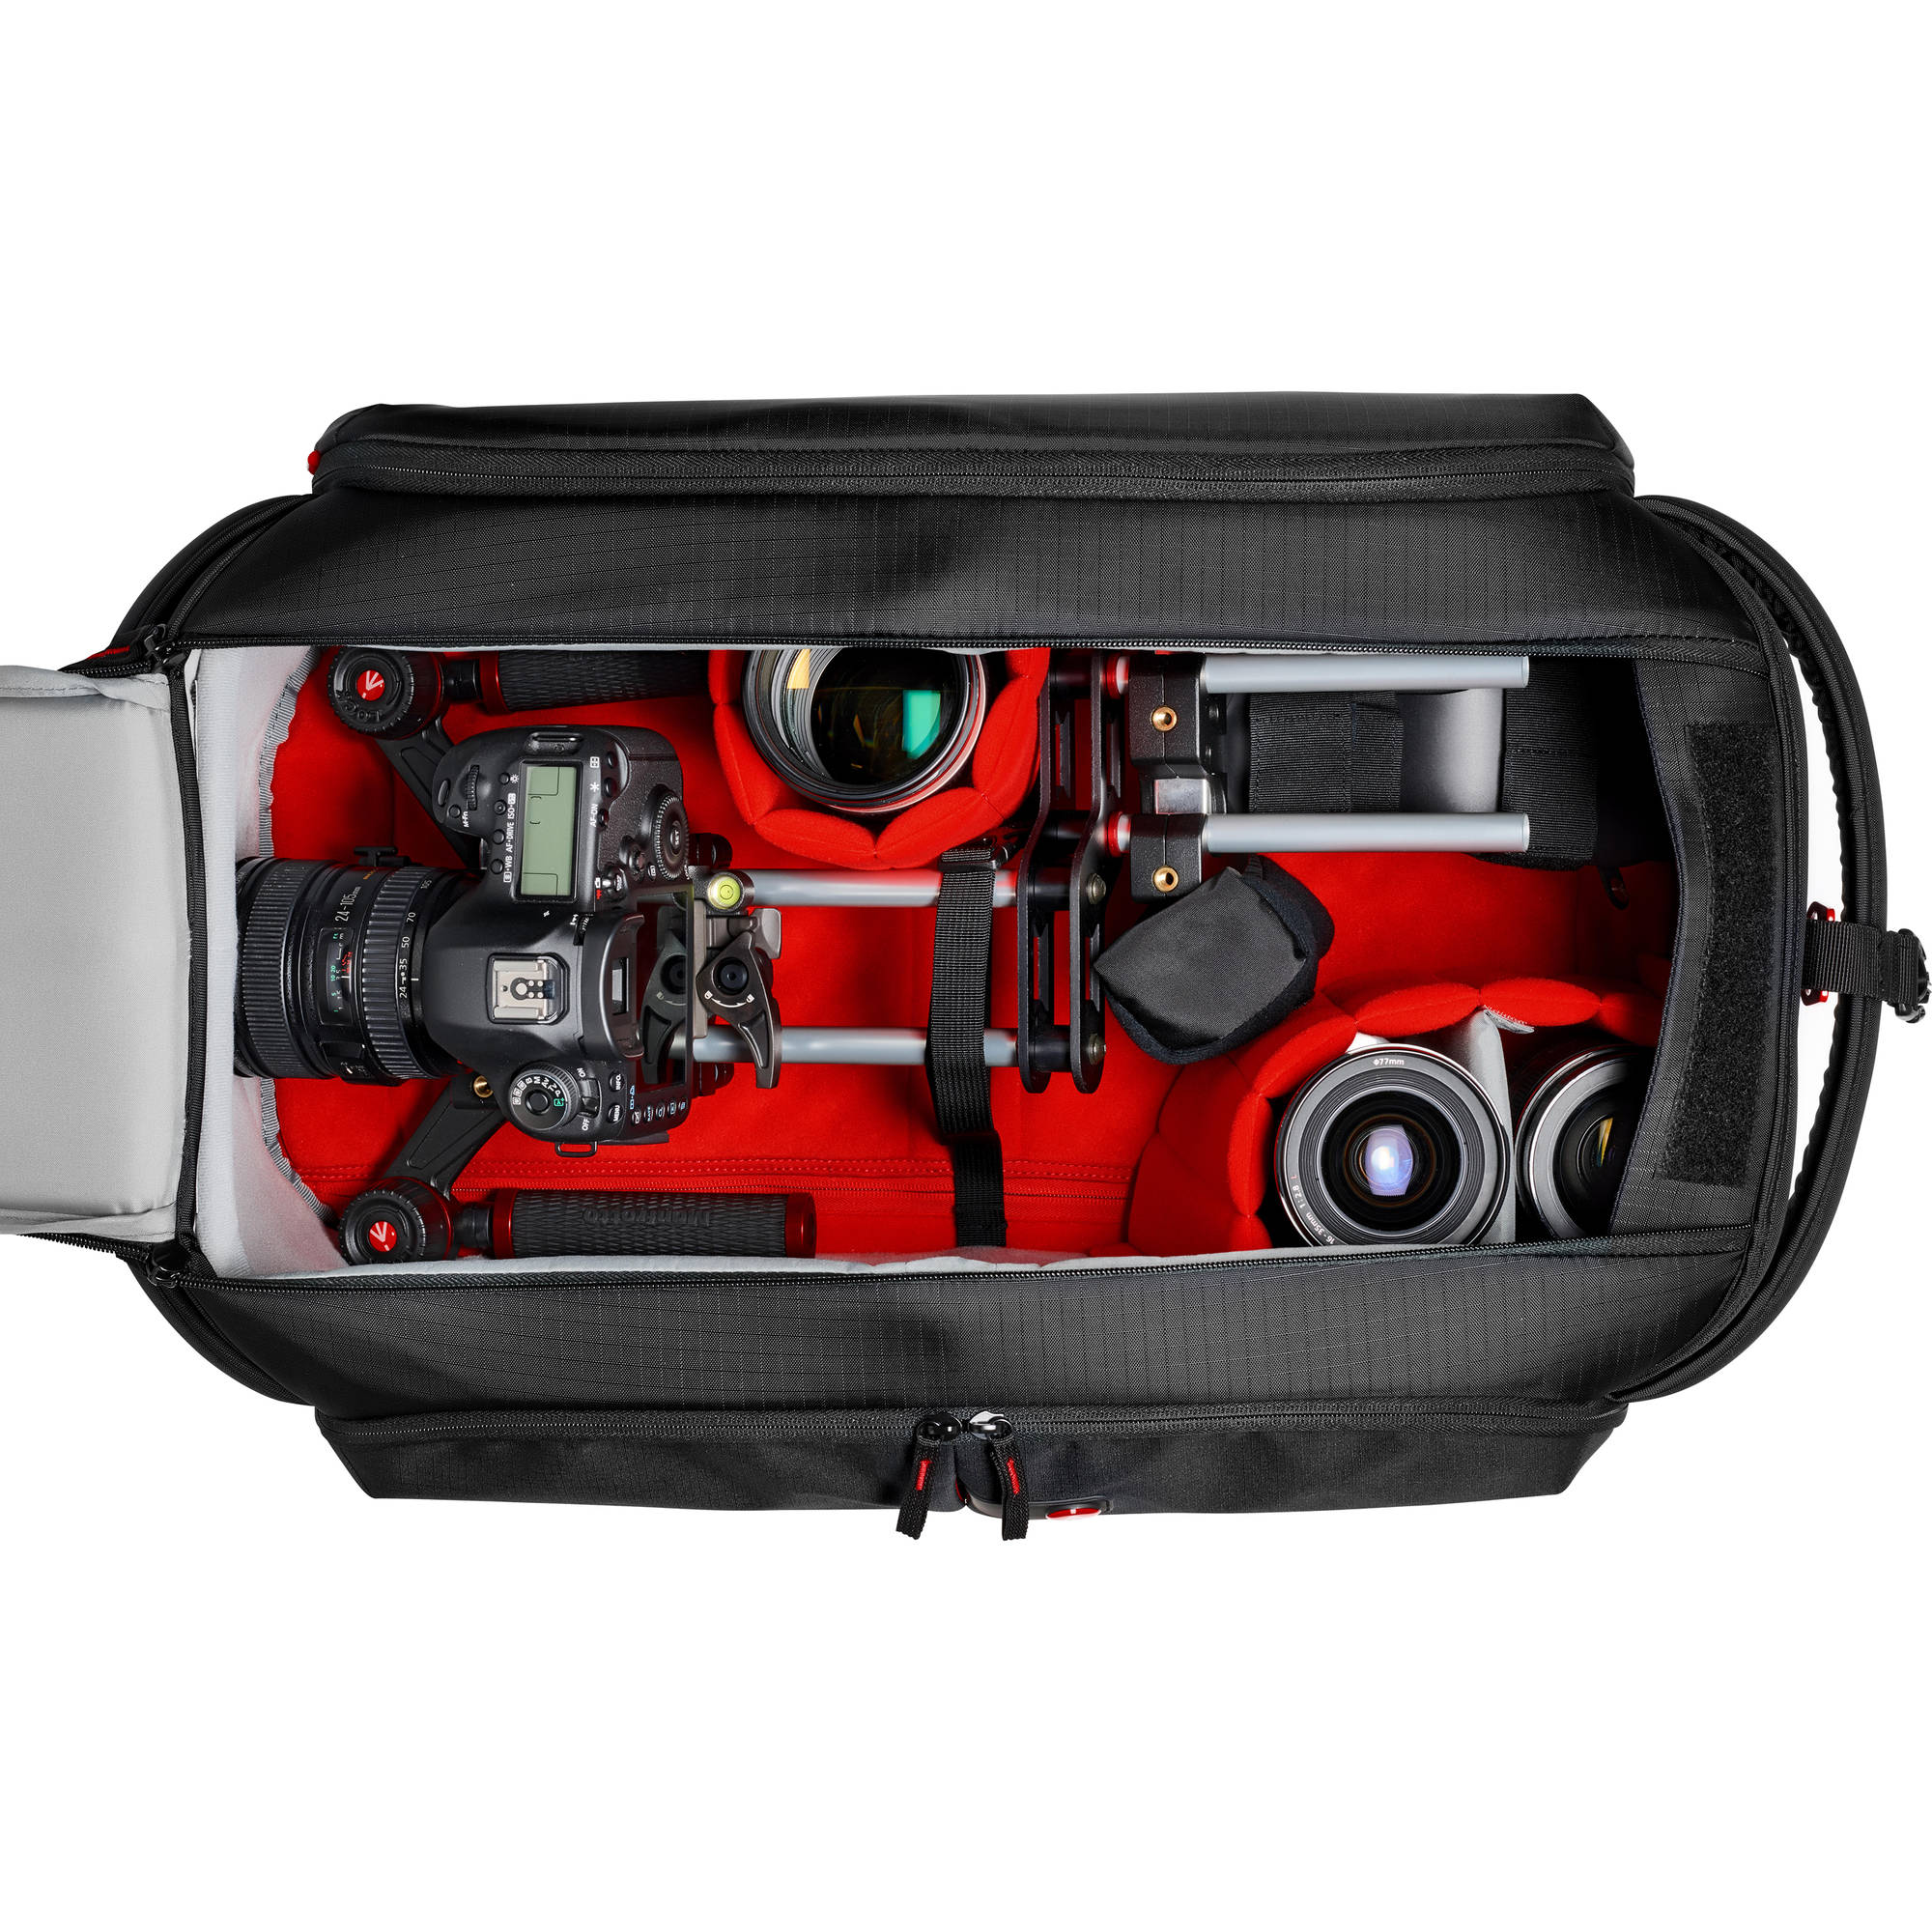 Manfrotto 195N Pro Light Camcorder Case for Sony PXW-FS7, ENG, & VDLSR Cameras